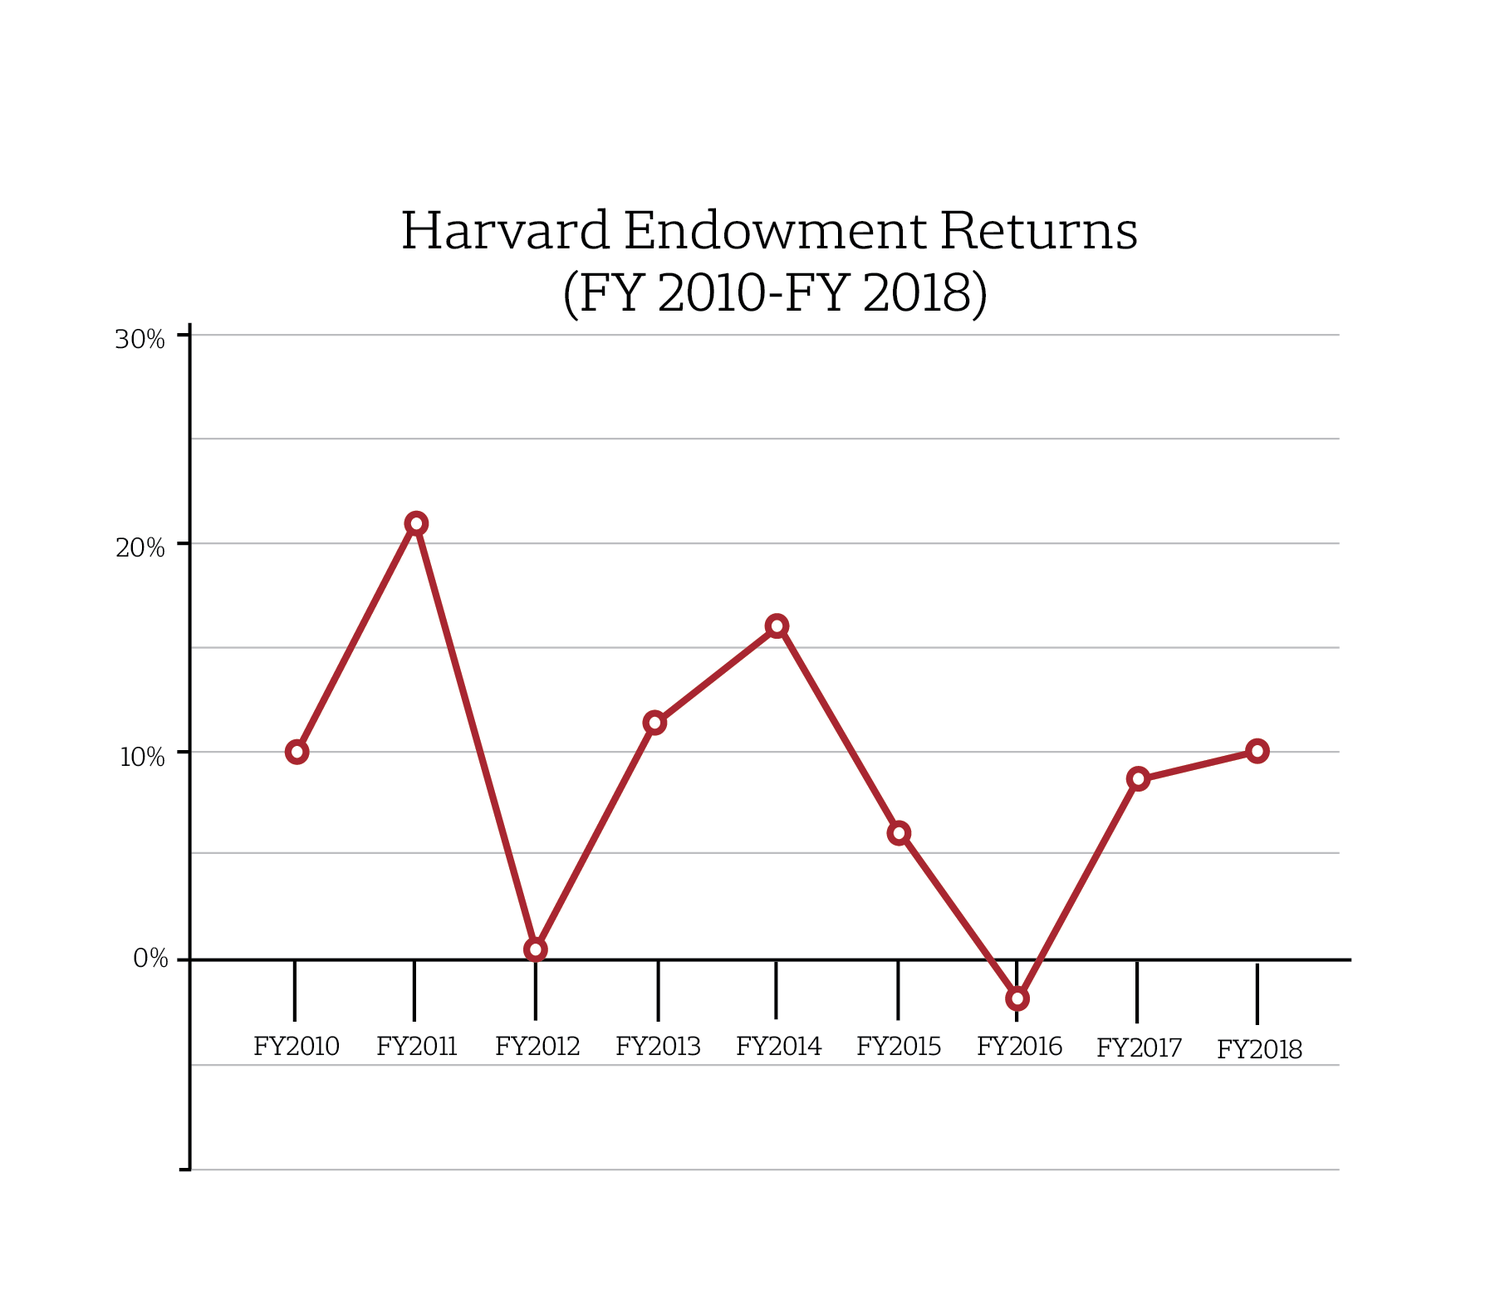 Harvard Endowment Returns 2018